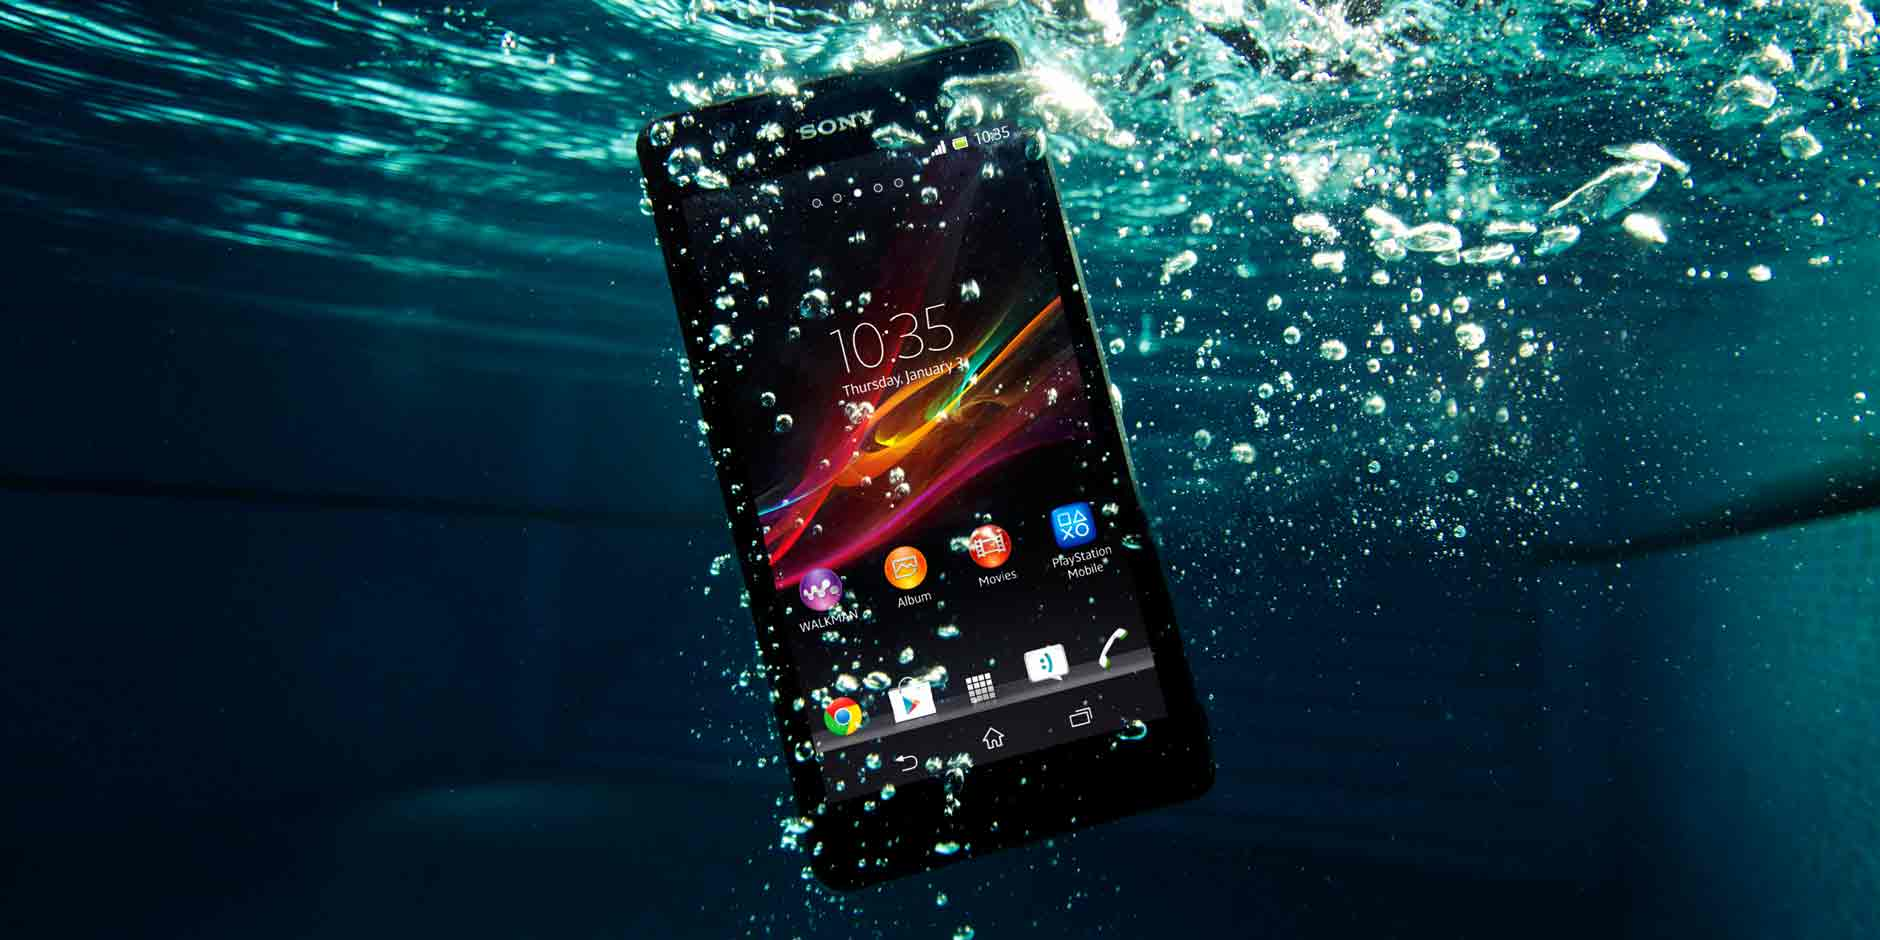 xperia-zr-features-durability-waterproof-